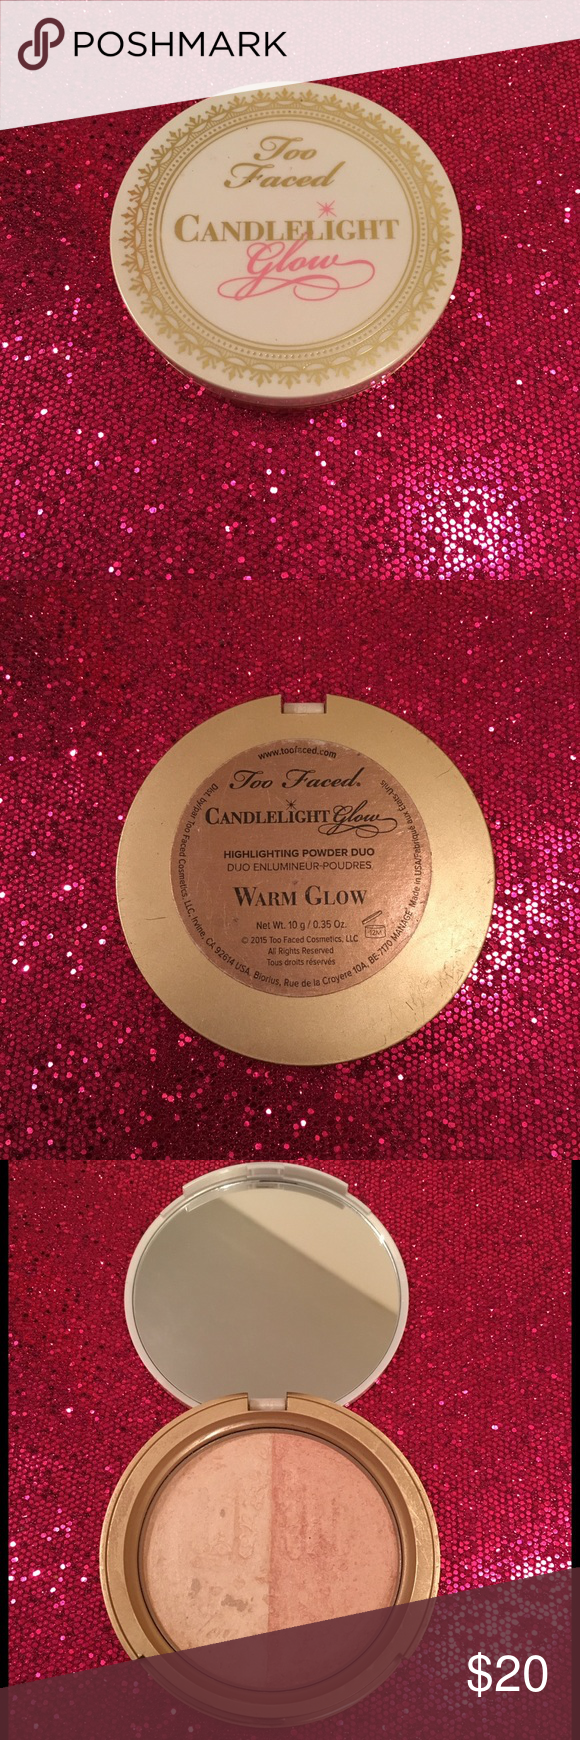 Too Faced Candlelight Glow Highlighting Powder Duo Gently used. Has since been sanitized. Too Faced Candlelight Glow Highlighting Powder Duo in the shade 'Warm Glow'. Warm glow features a champagne and peach combo. Too Faced Makeup